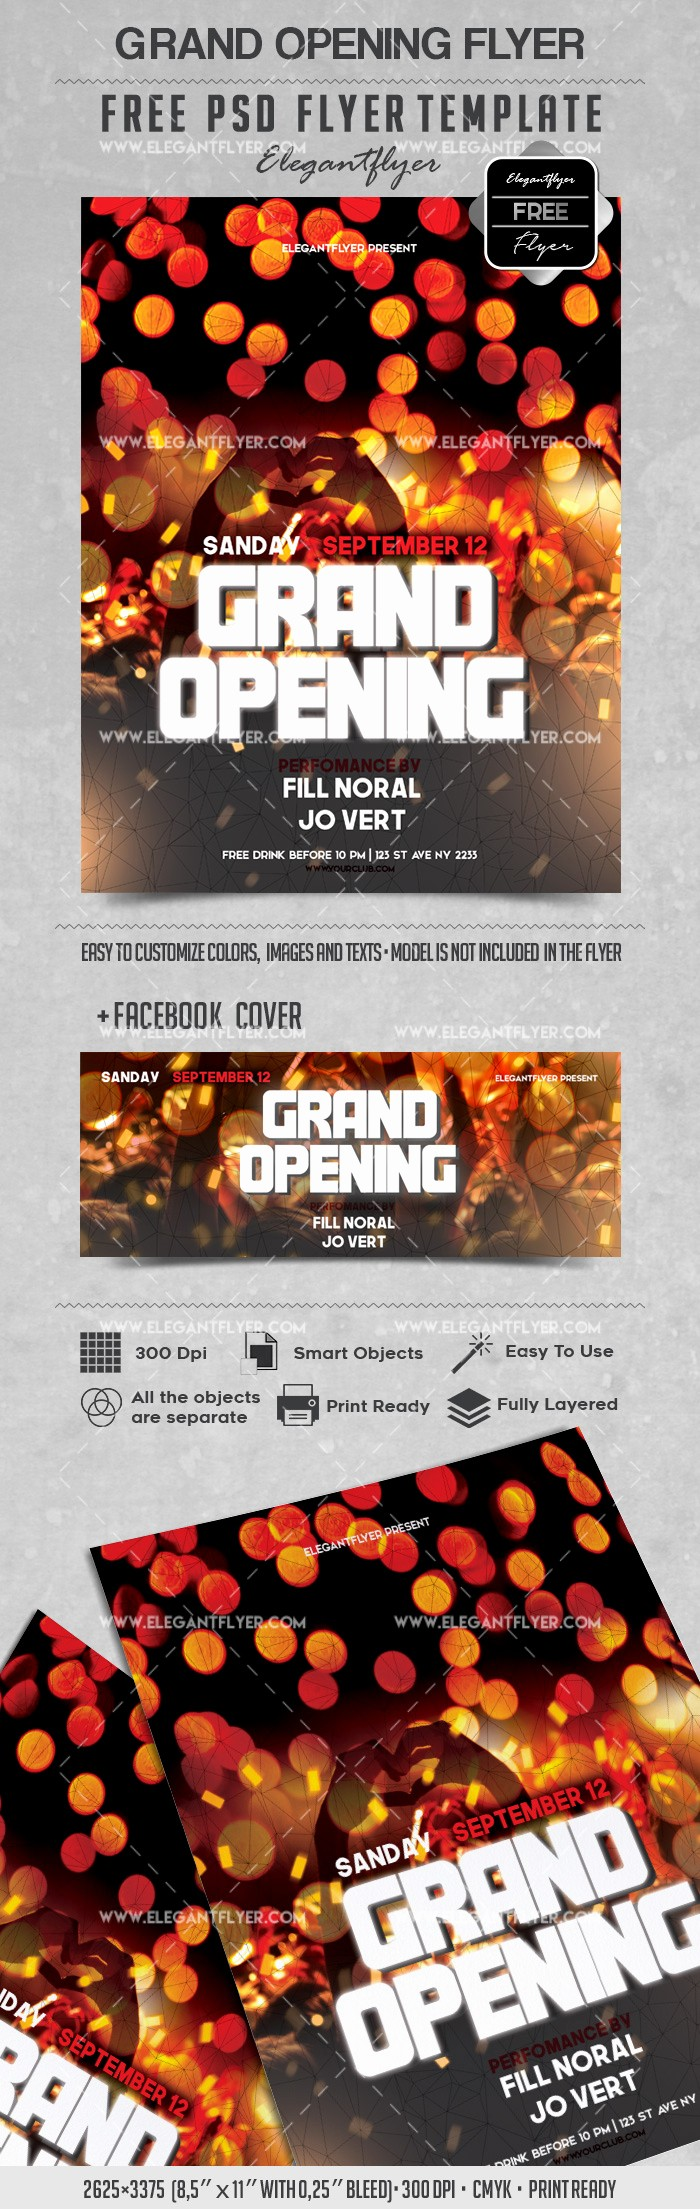 Free Grand Opening Flyer Template Lovely Party for Grand Opening Lights Template – by Elegantflyer